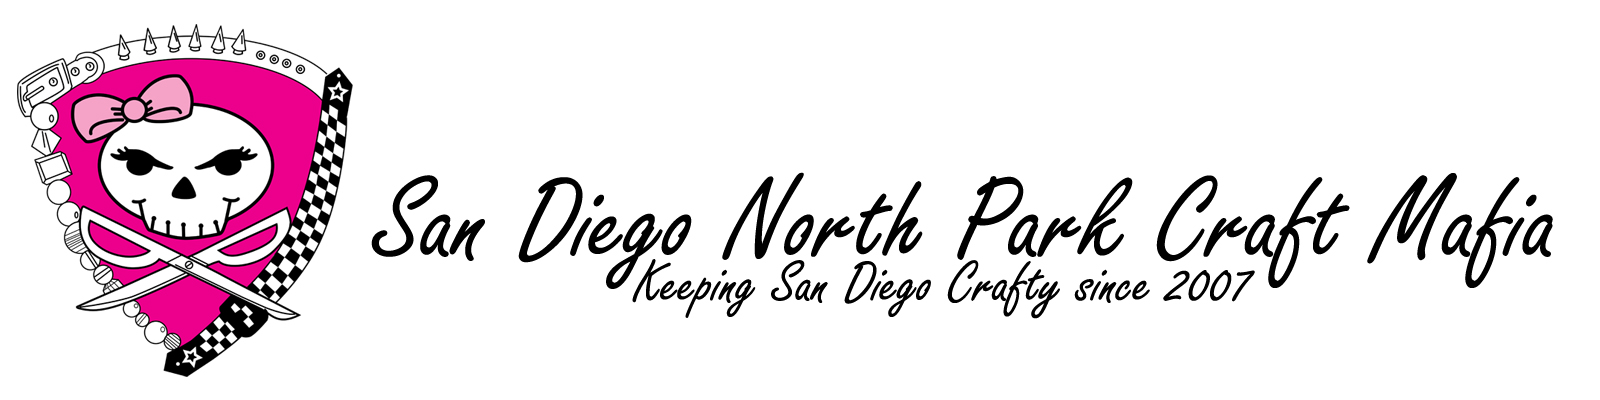 San Diego North Park Craft Mafia, Keeping San Diego Crafty Since 2007